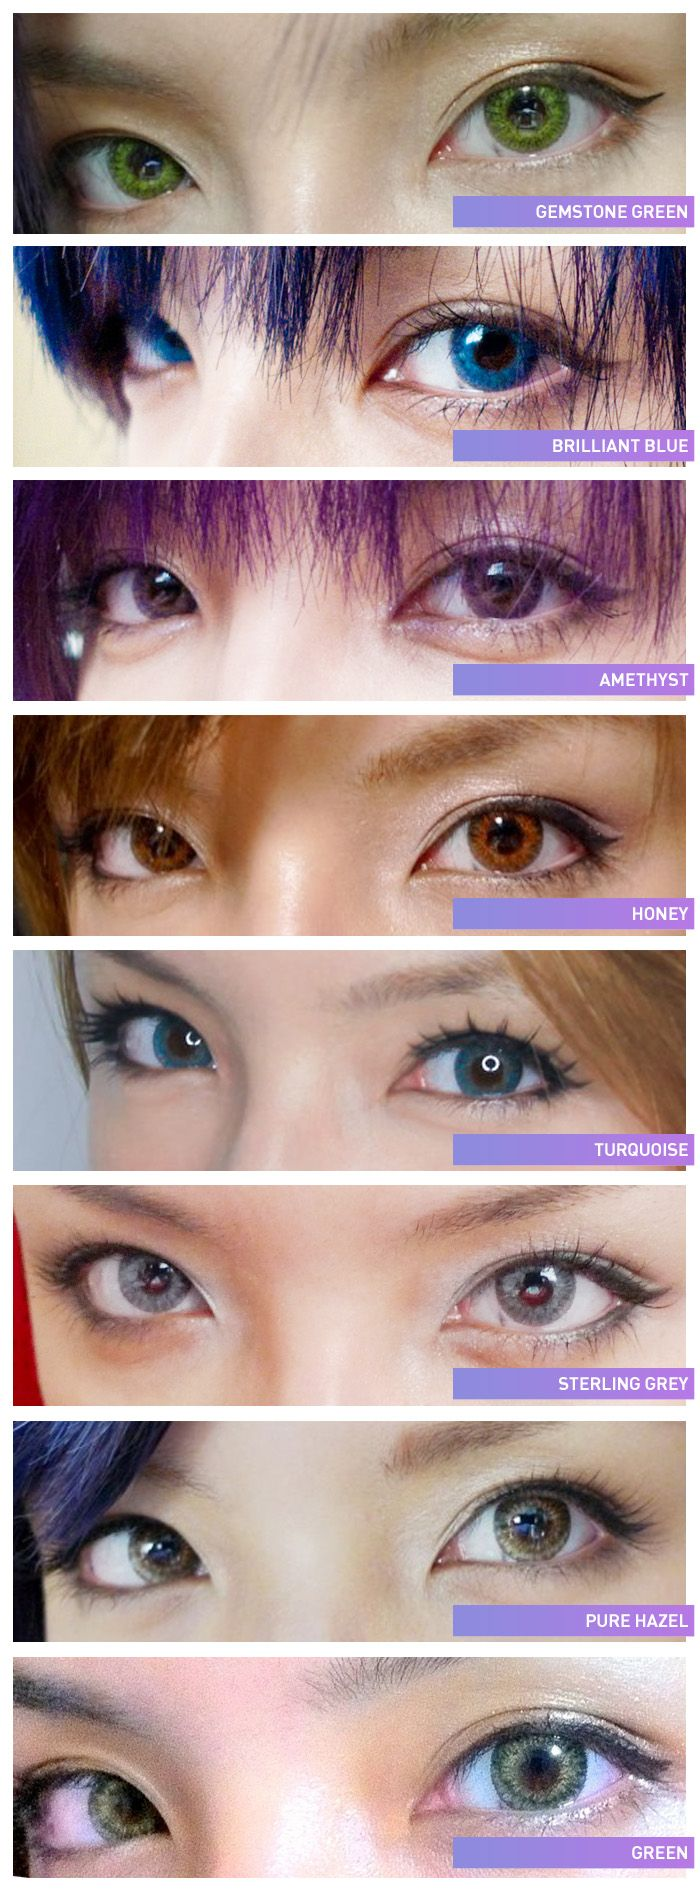 FreshLook ColorBlends colored contacts provide a unique 3 ...